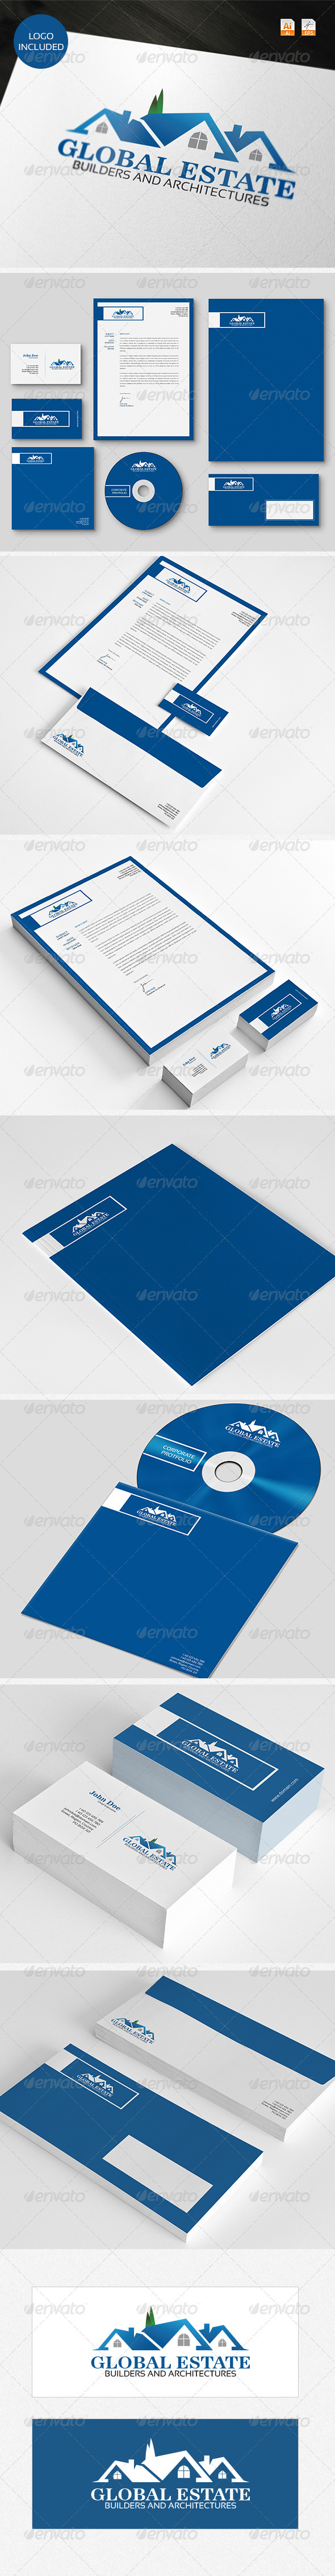 Global Estate Logo & Identity - Stationery Print Templates